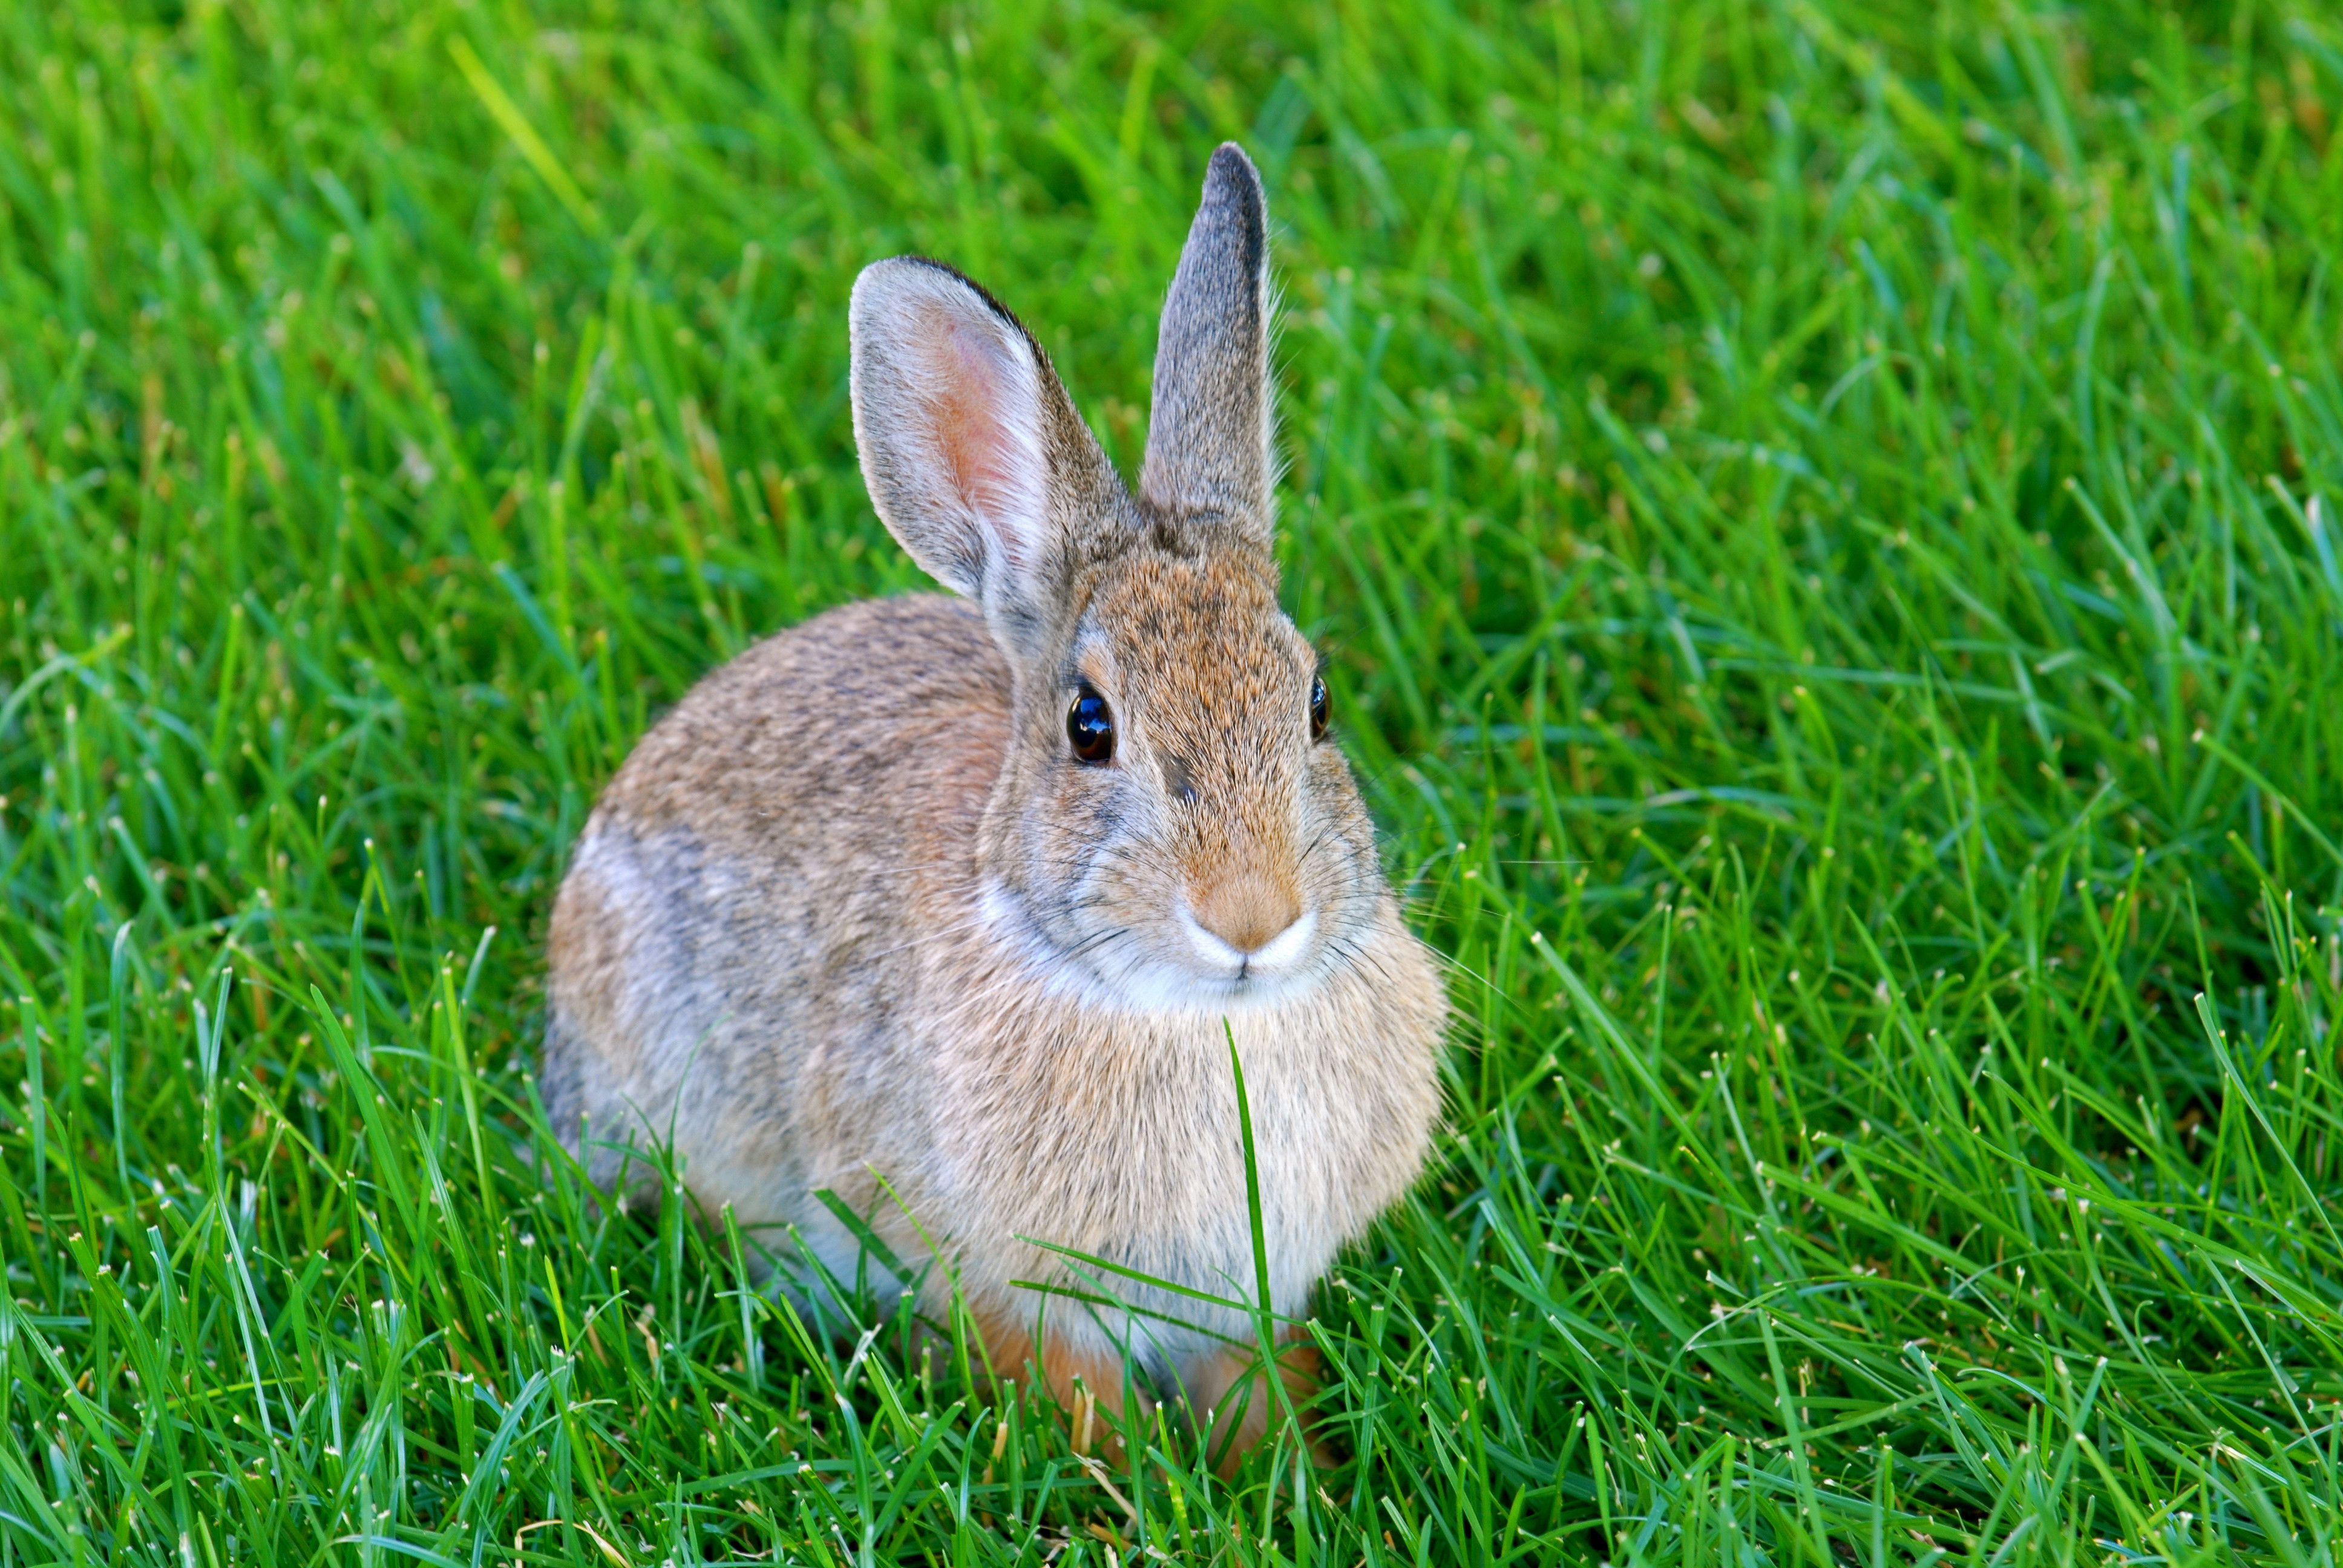 109845 download wallpaper Animals, Hare, Rabbit, Animal, Grass screensavers and pictures for free